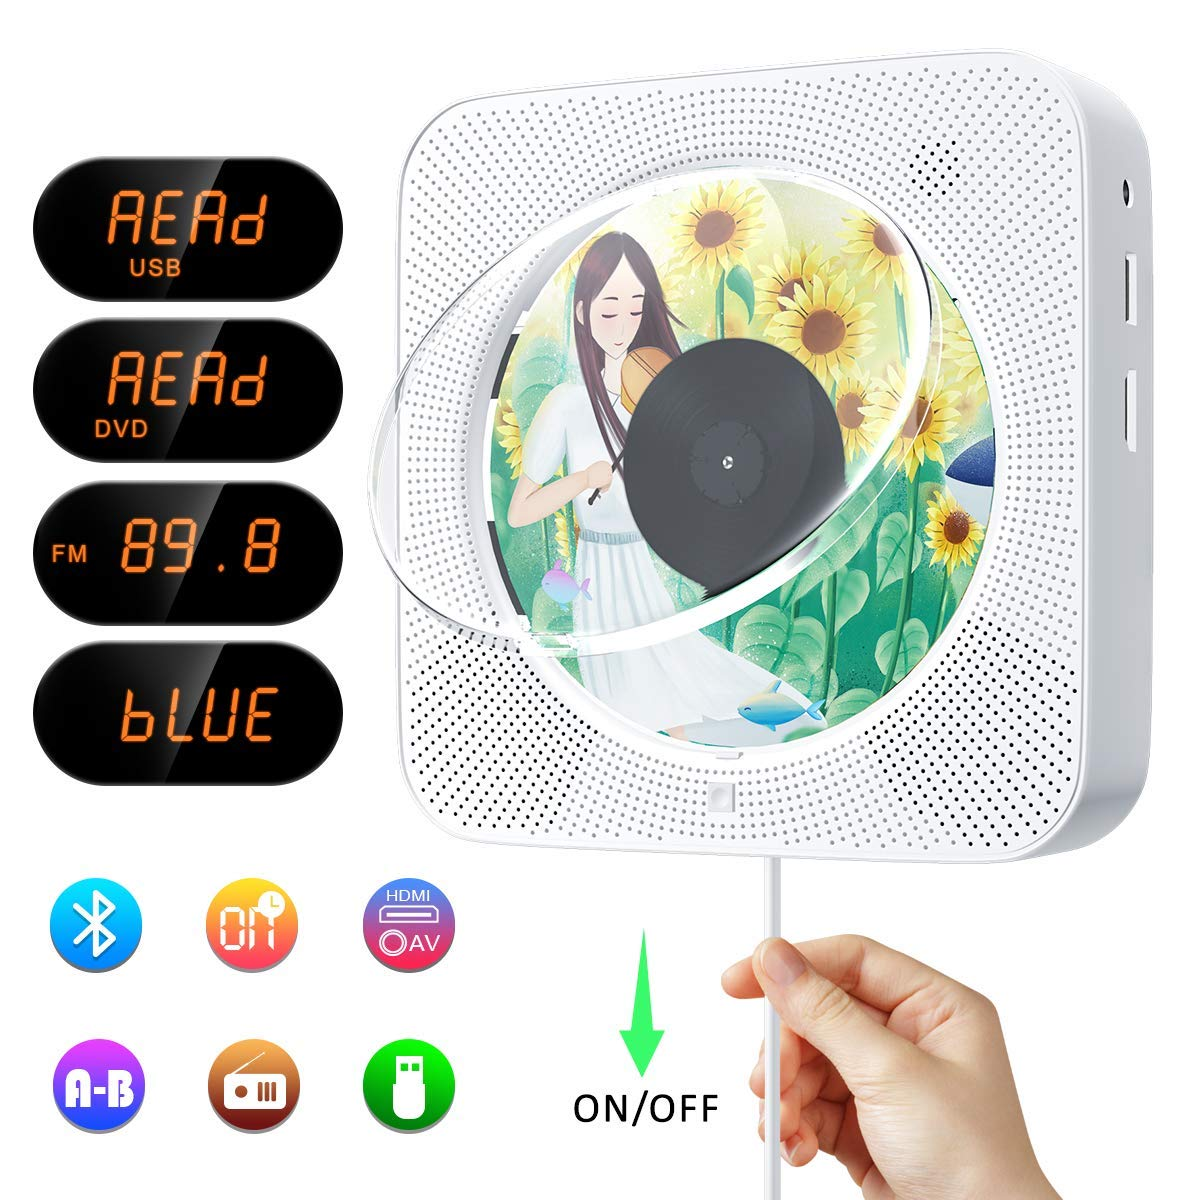 YOOHOO Portable CD//DVD Player with Bluetooth,Wall Mountable Personal Compact Disc Player with Built-in HiFi Speakers//LED Display//FM Radio//Remote Control//AUX Input Output Blue